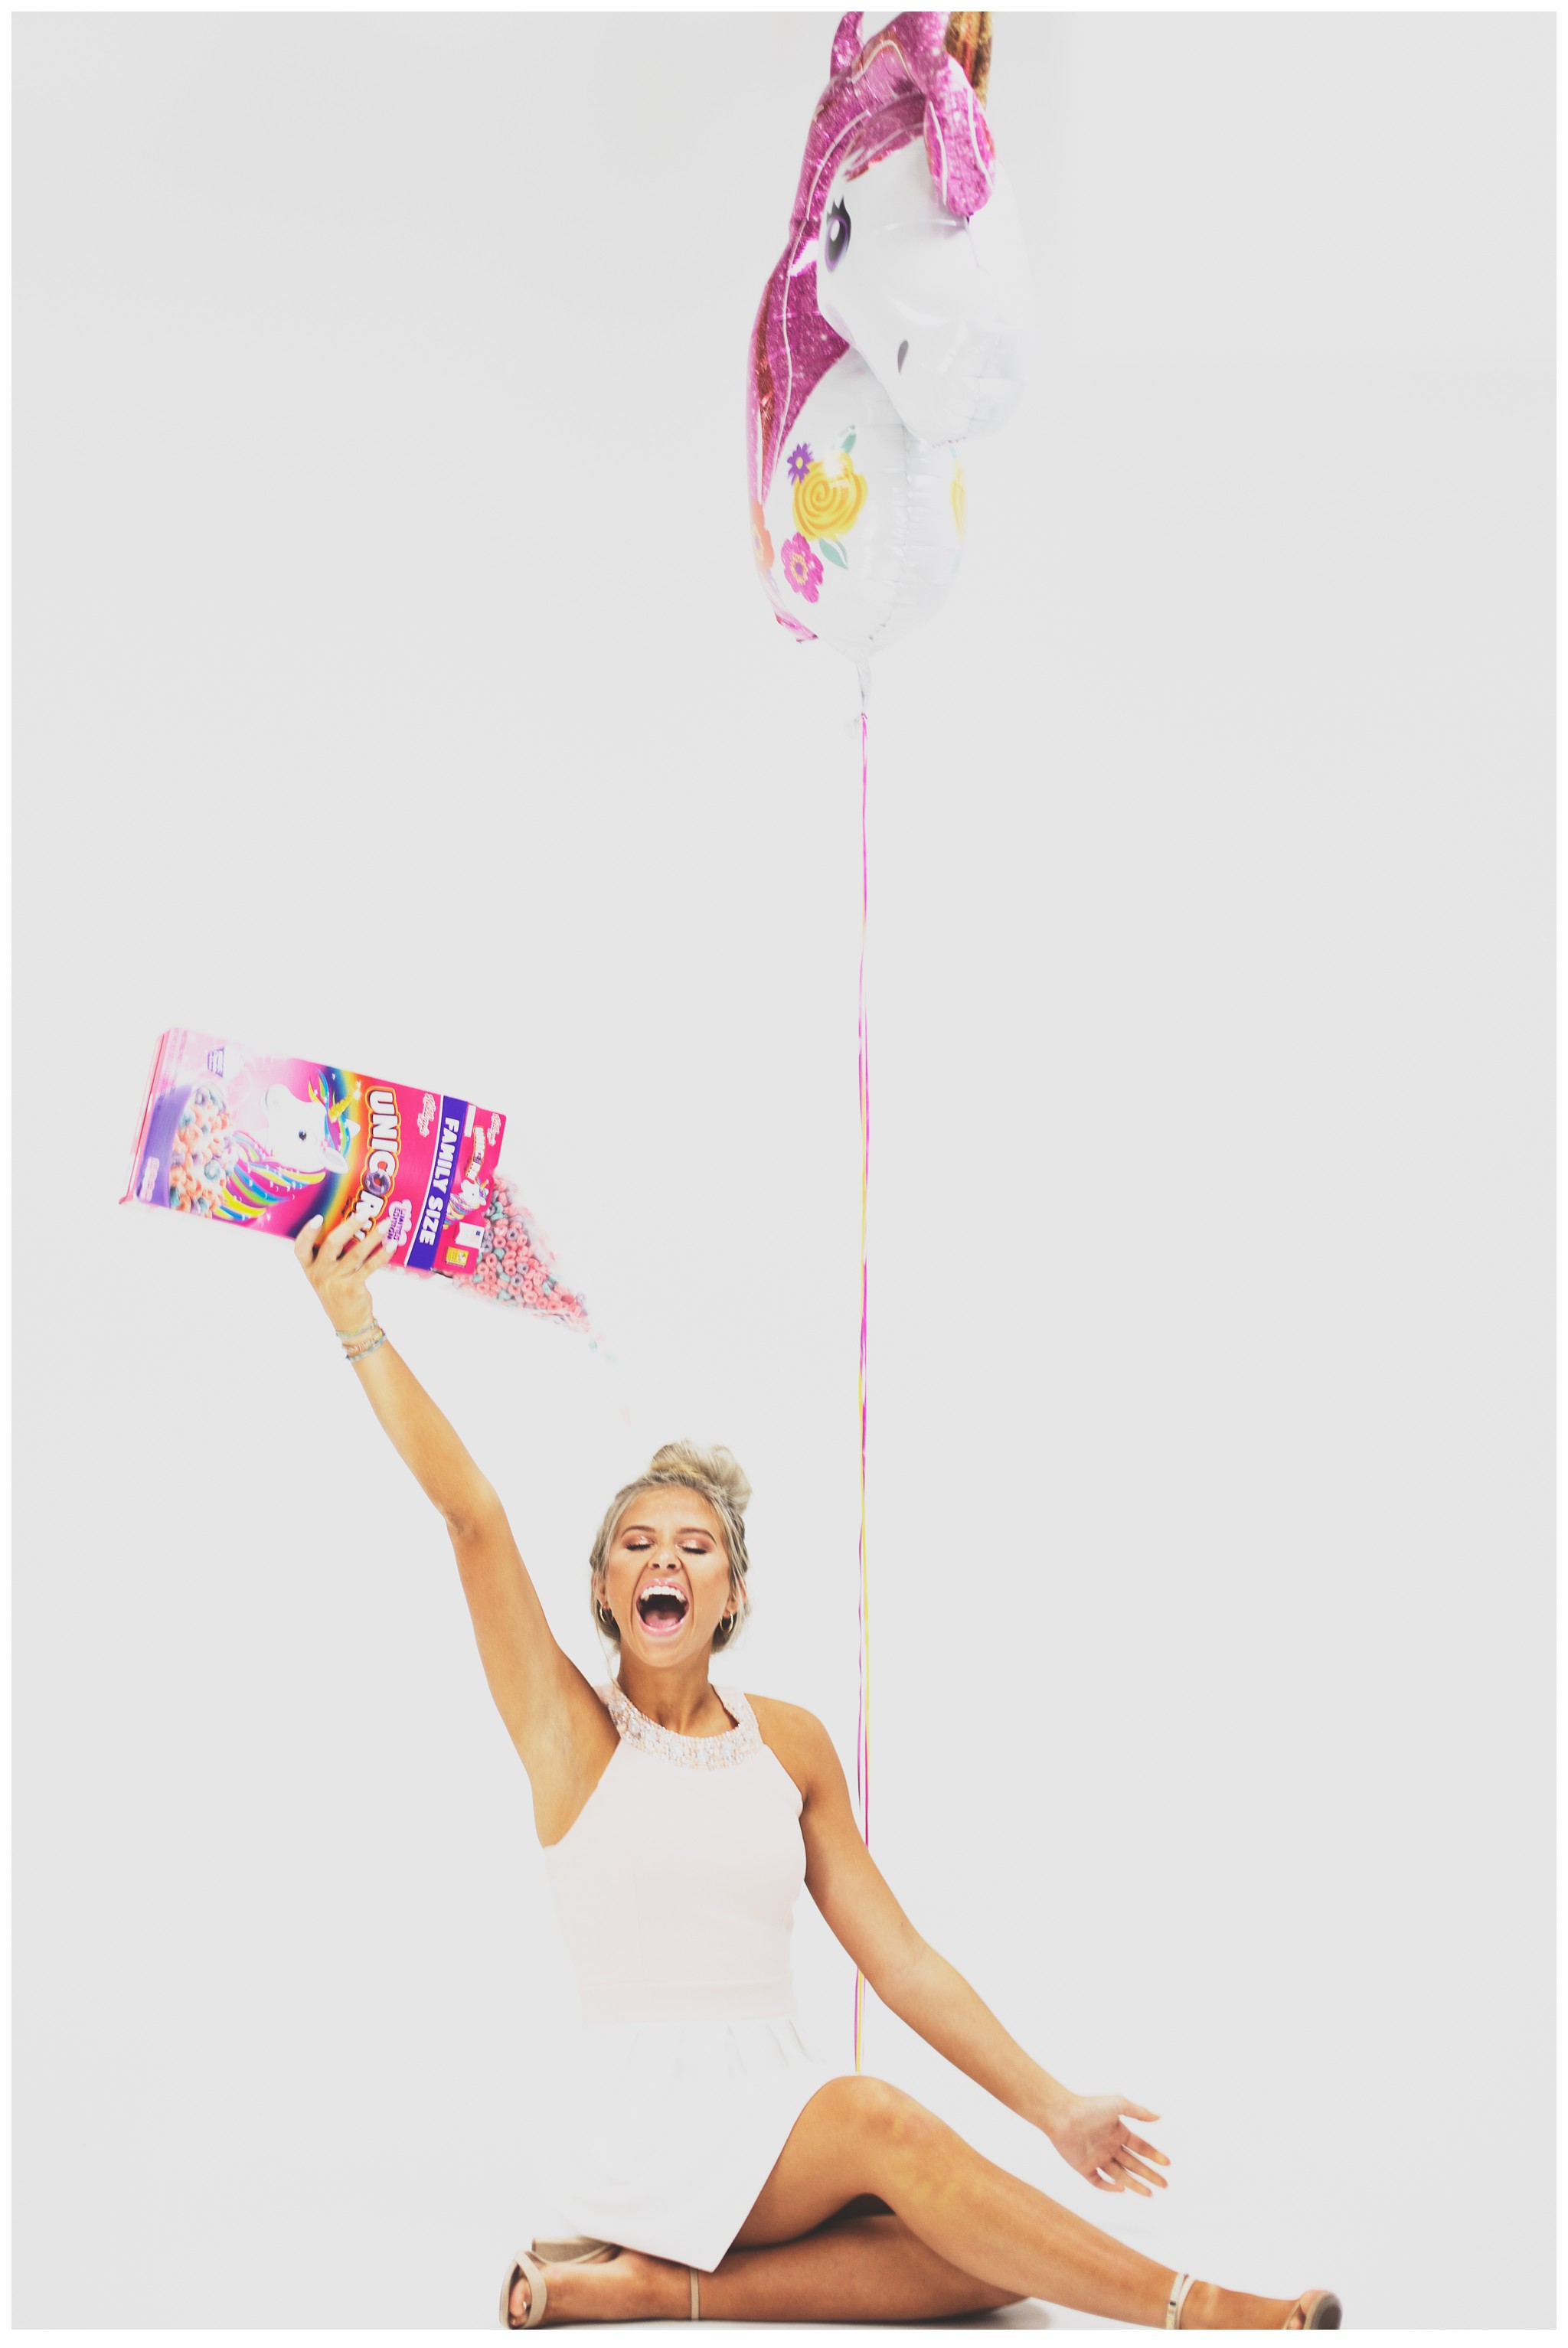 Senior Model with Unicorn Balloon and Fruity Pebbles Cereal